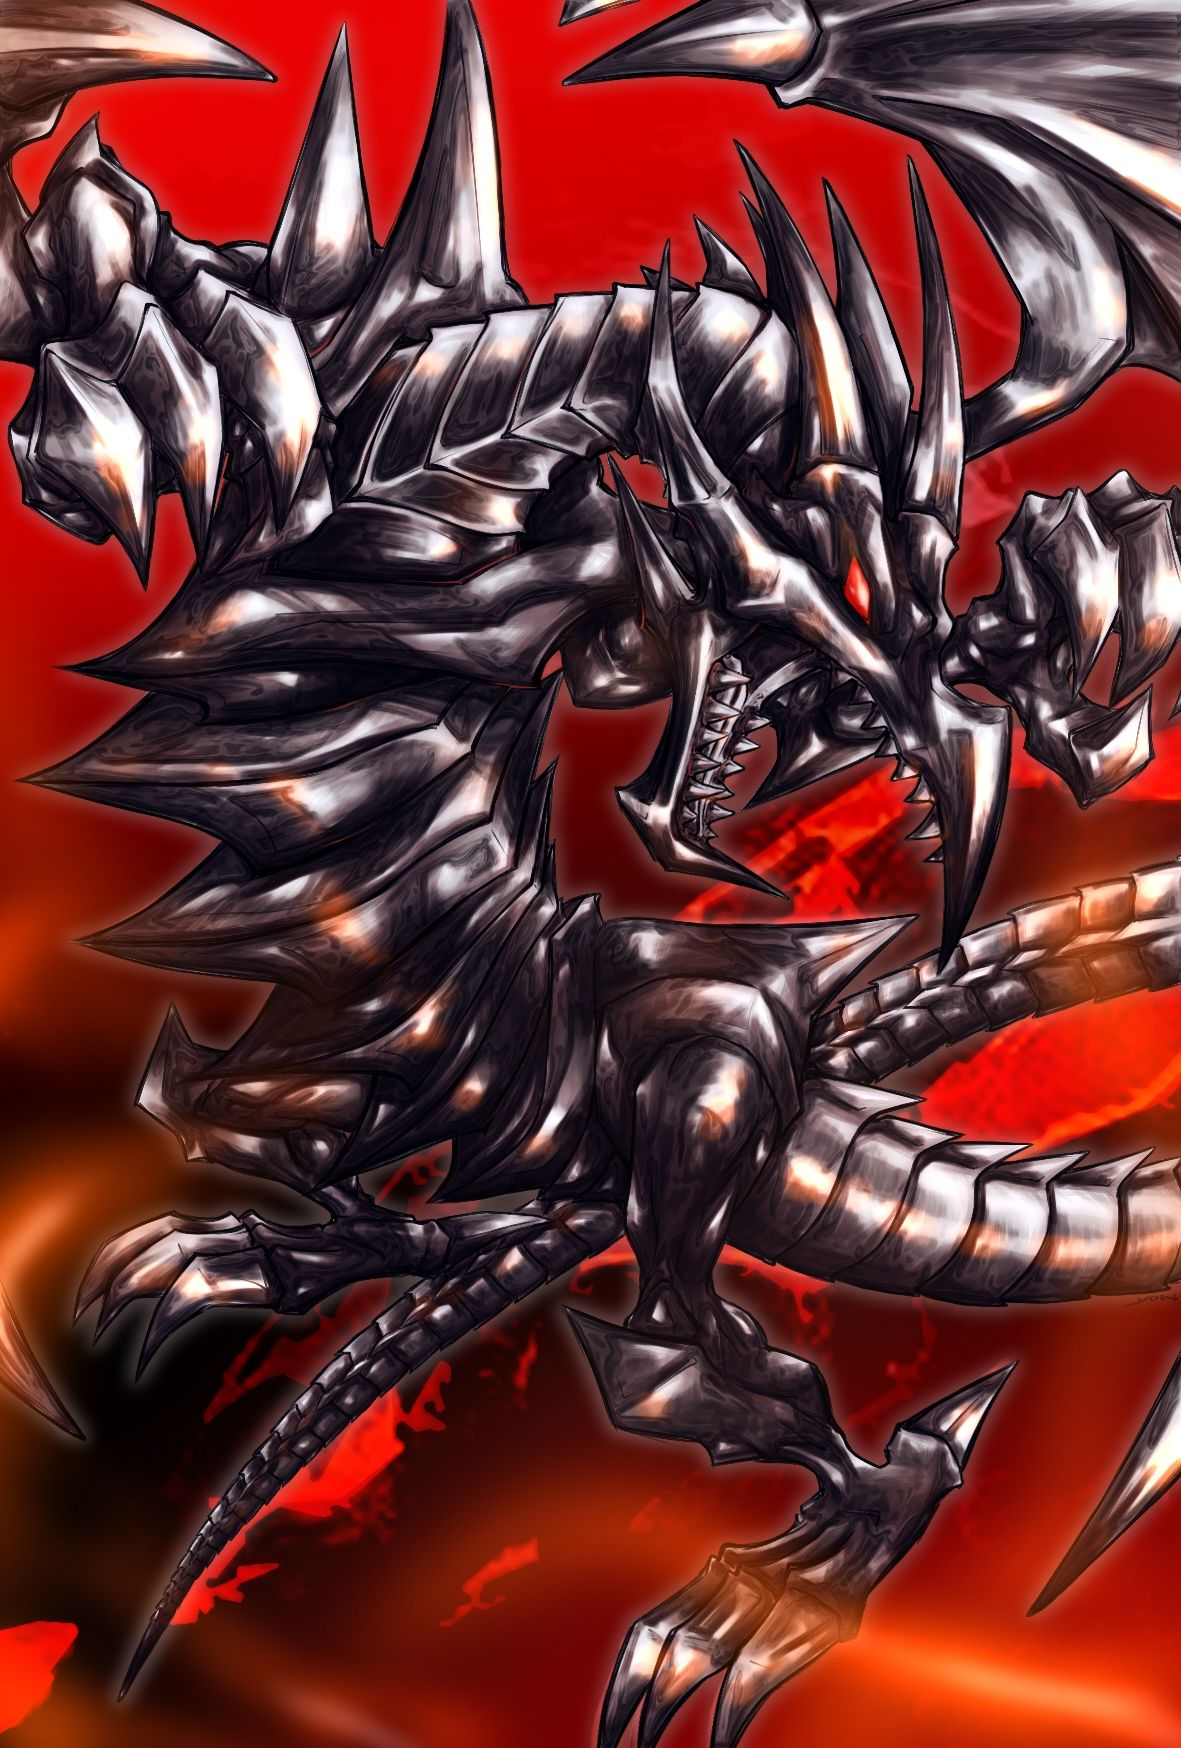 Red Eyes Black Dragon Wallpaper Wallpapersafari Black Dragon